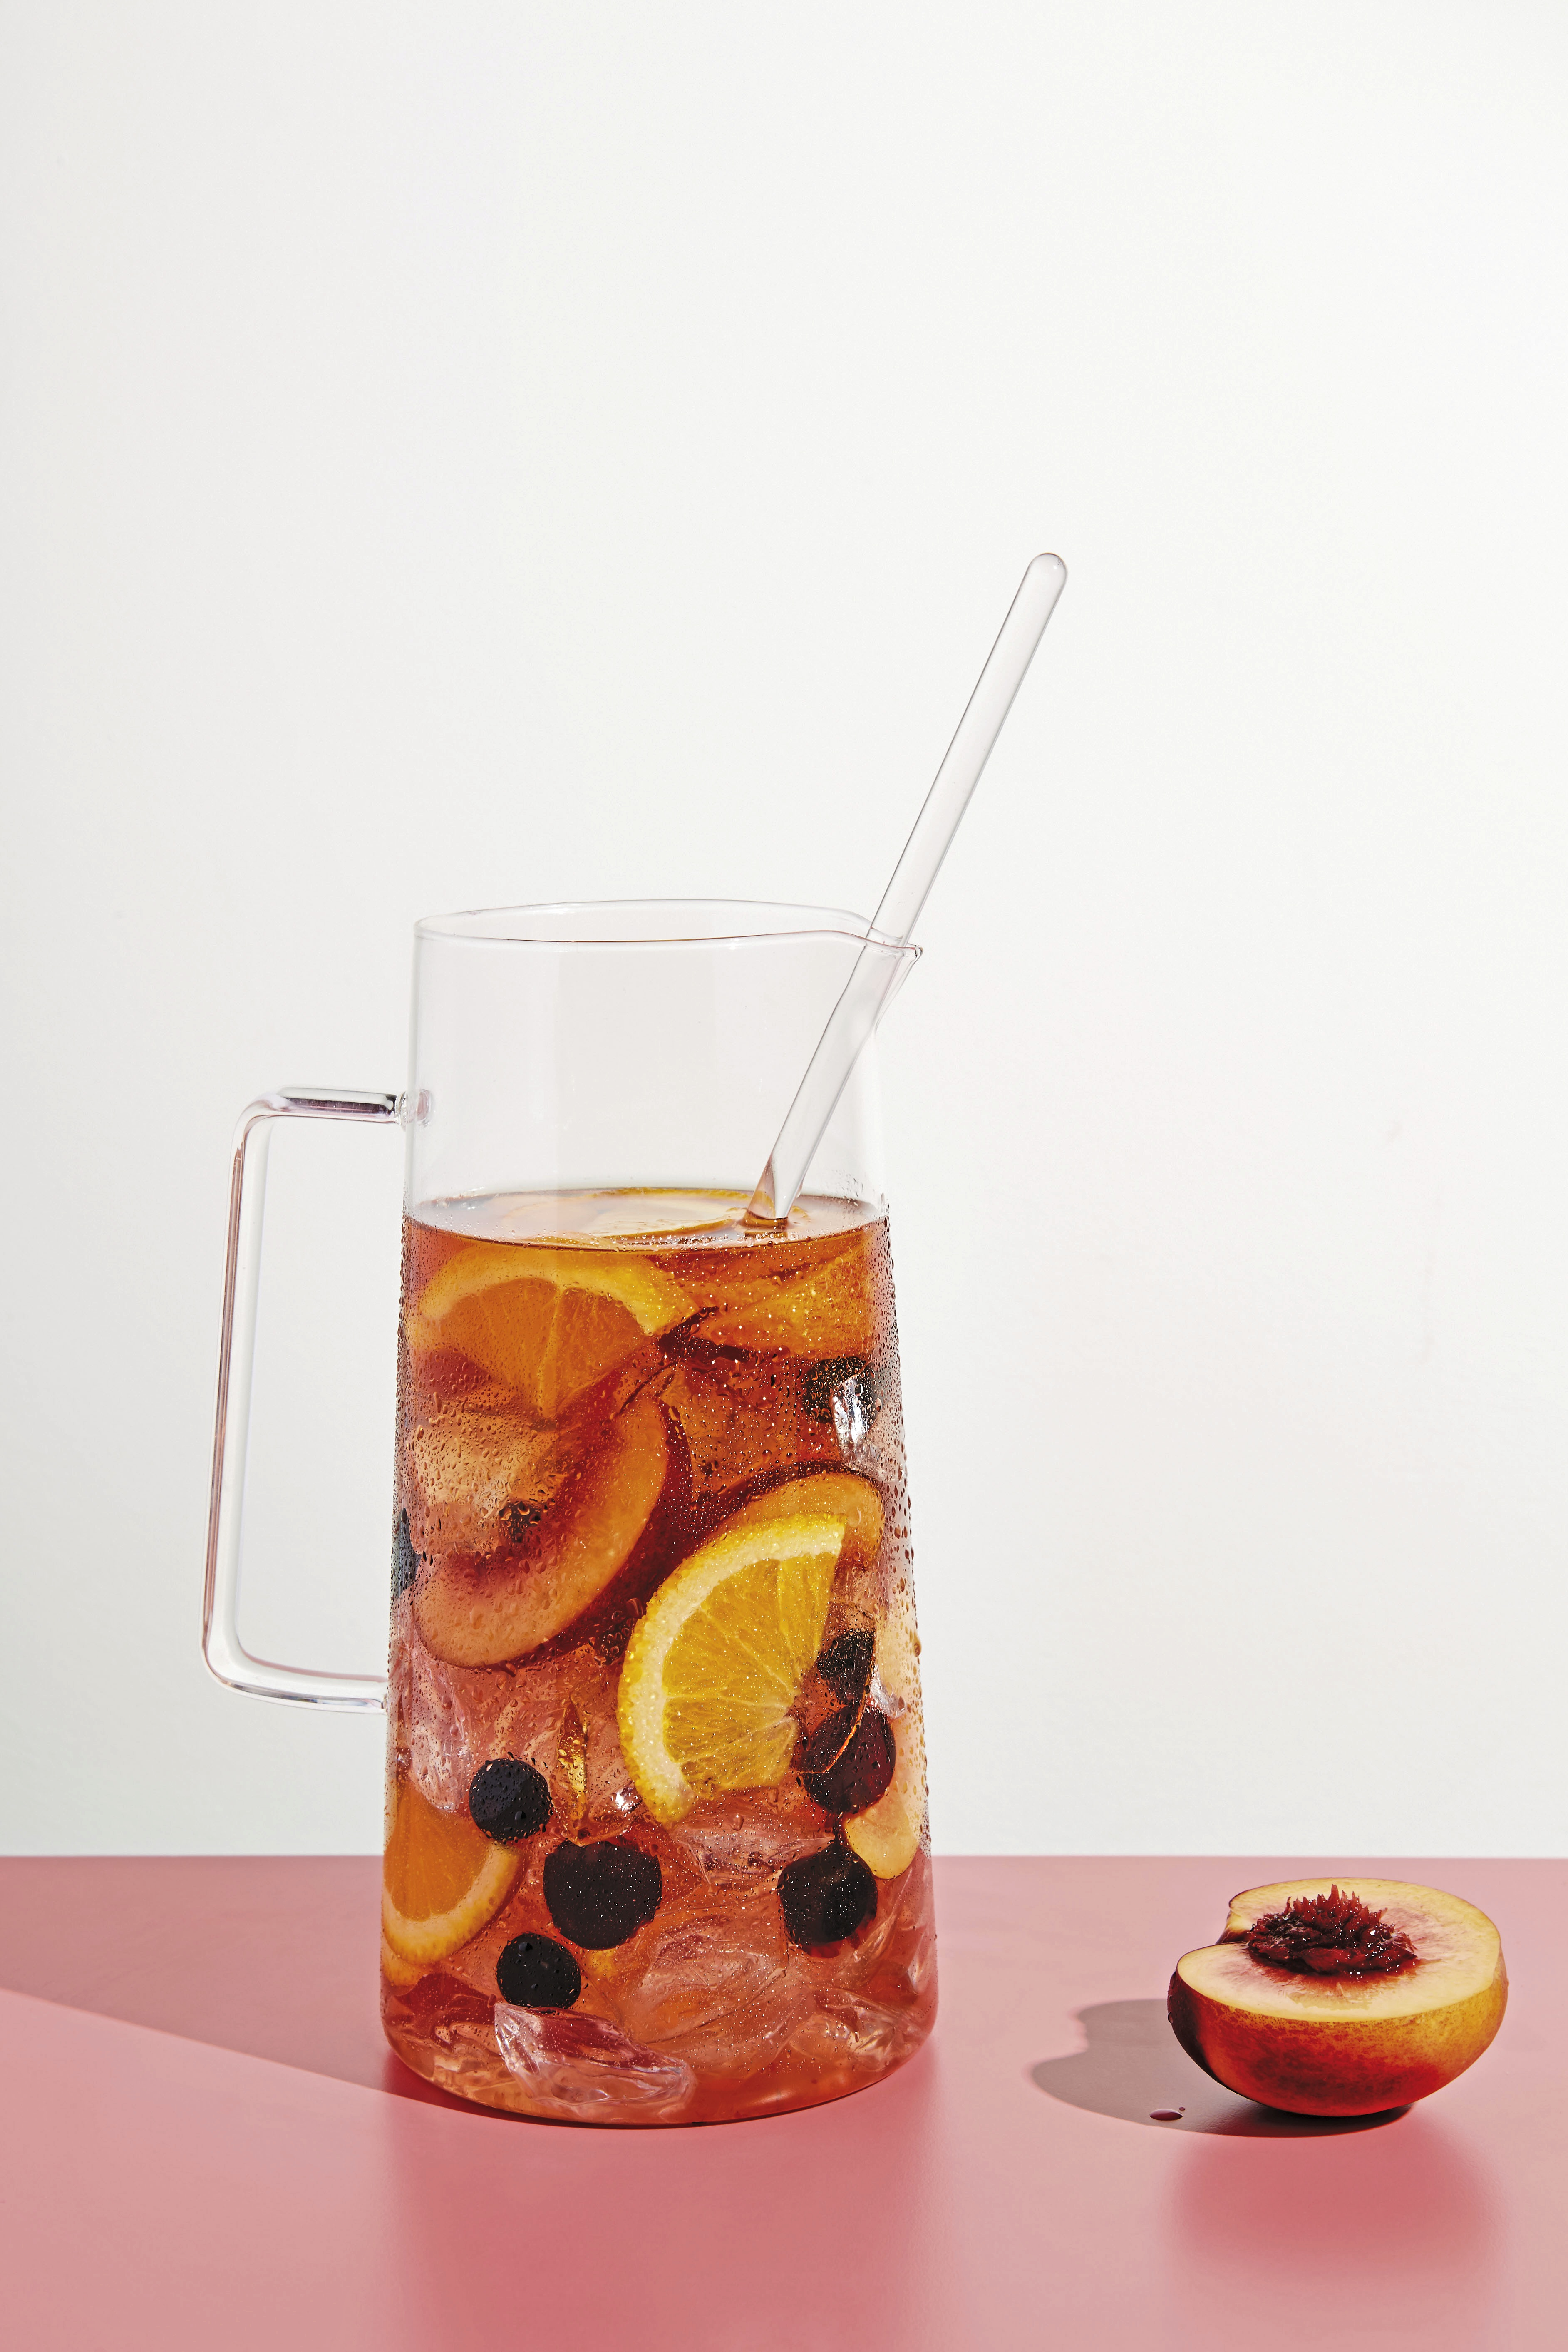 """3518-Diam-9780553459524-art-r1-2 Rose sangria with cherries is from """"Cherry Bombe: The Cookbook"""" by Kerry Diamond and Claudia Wu."""